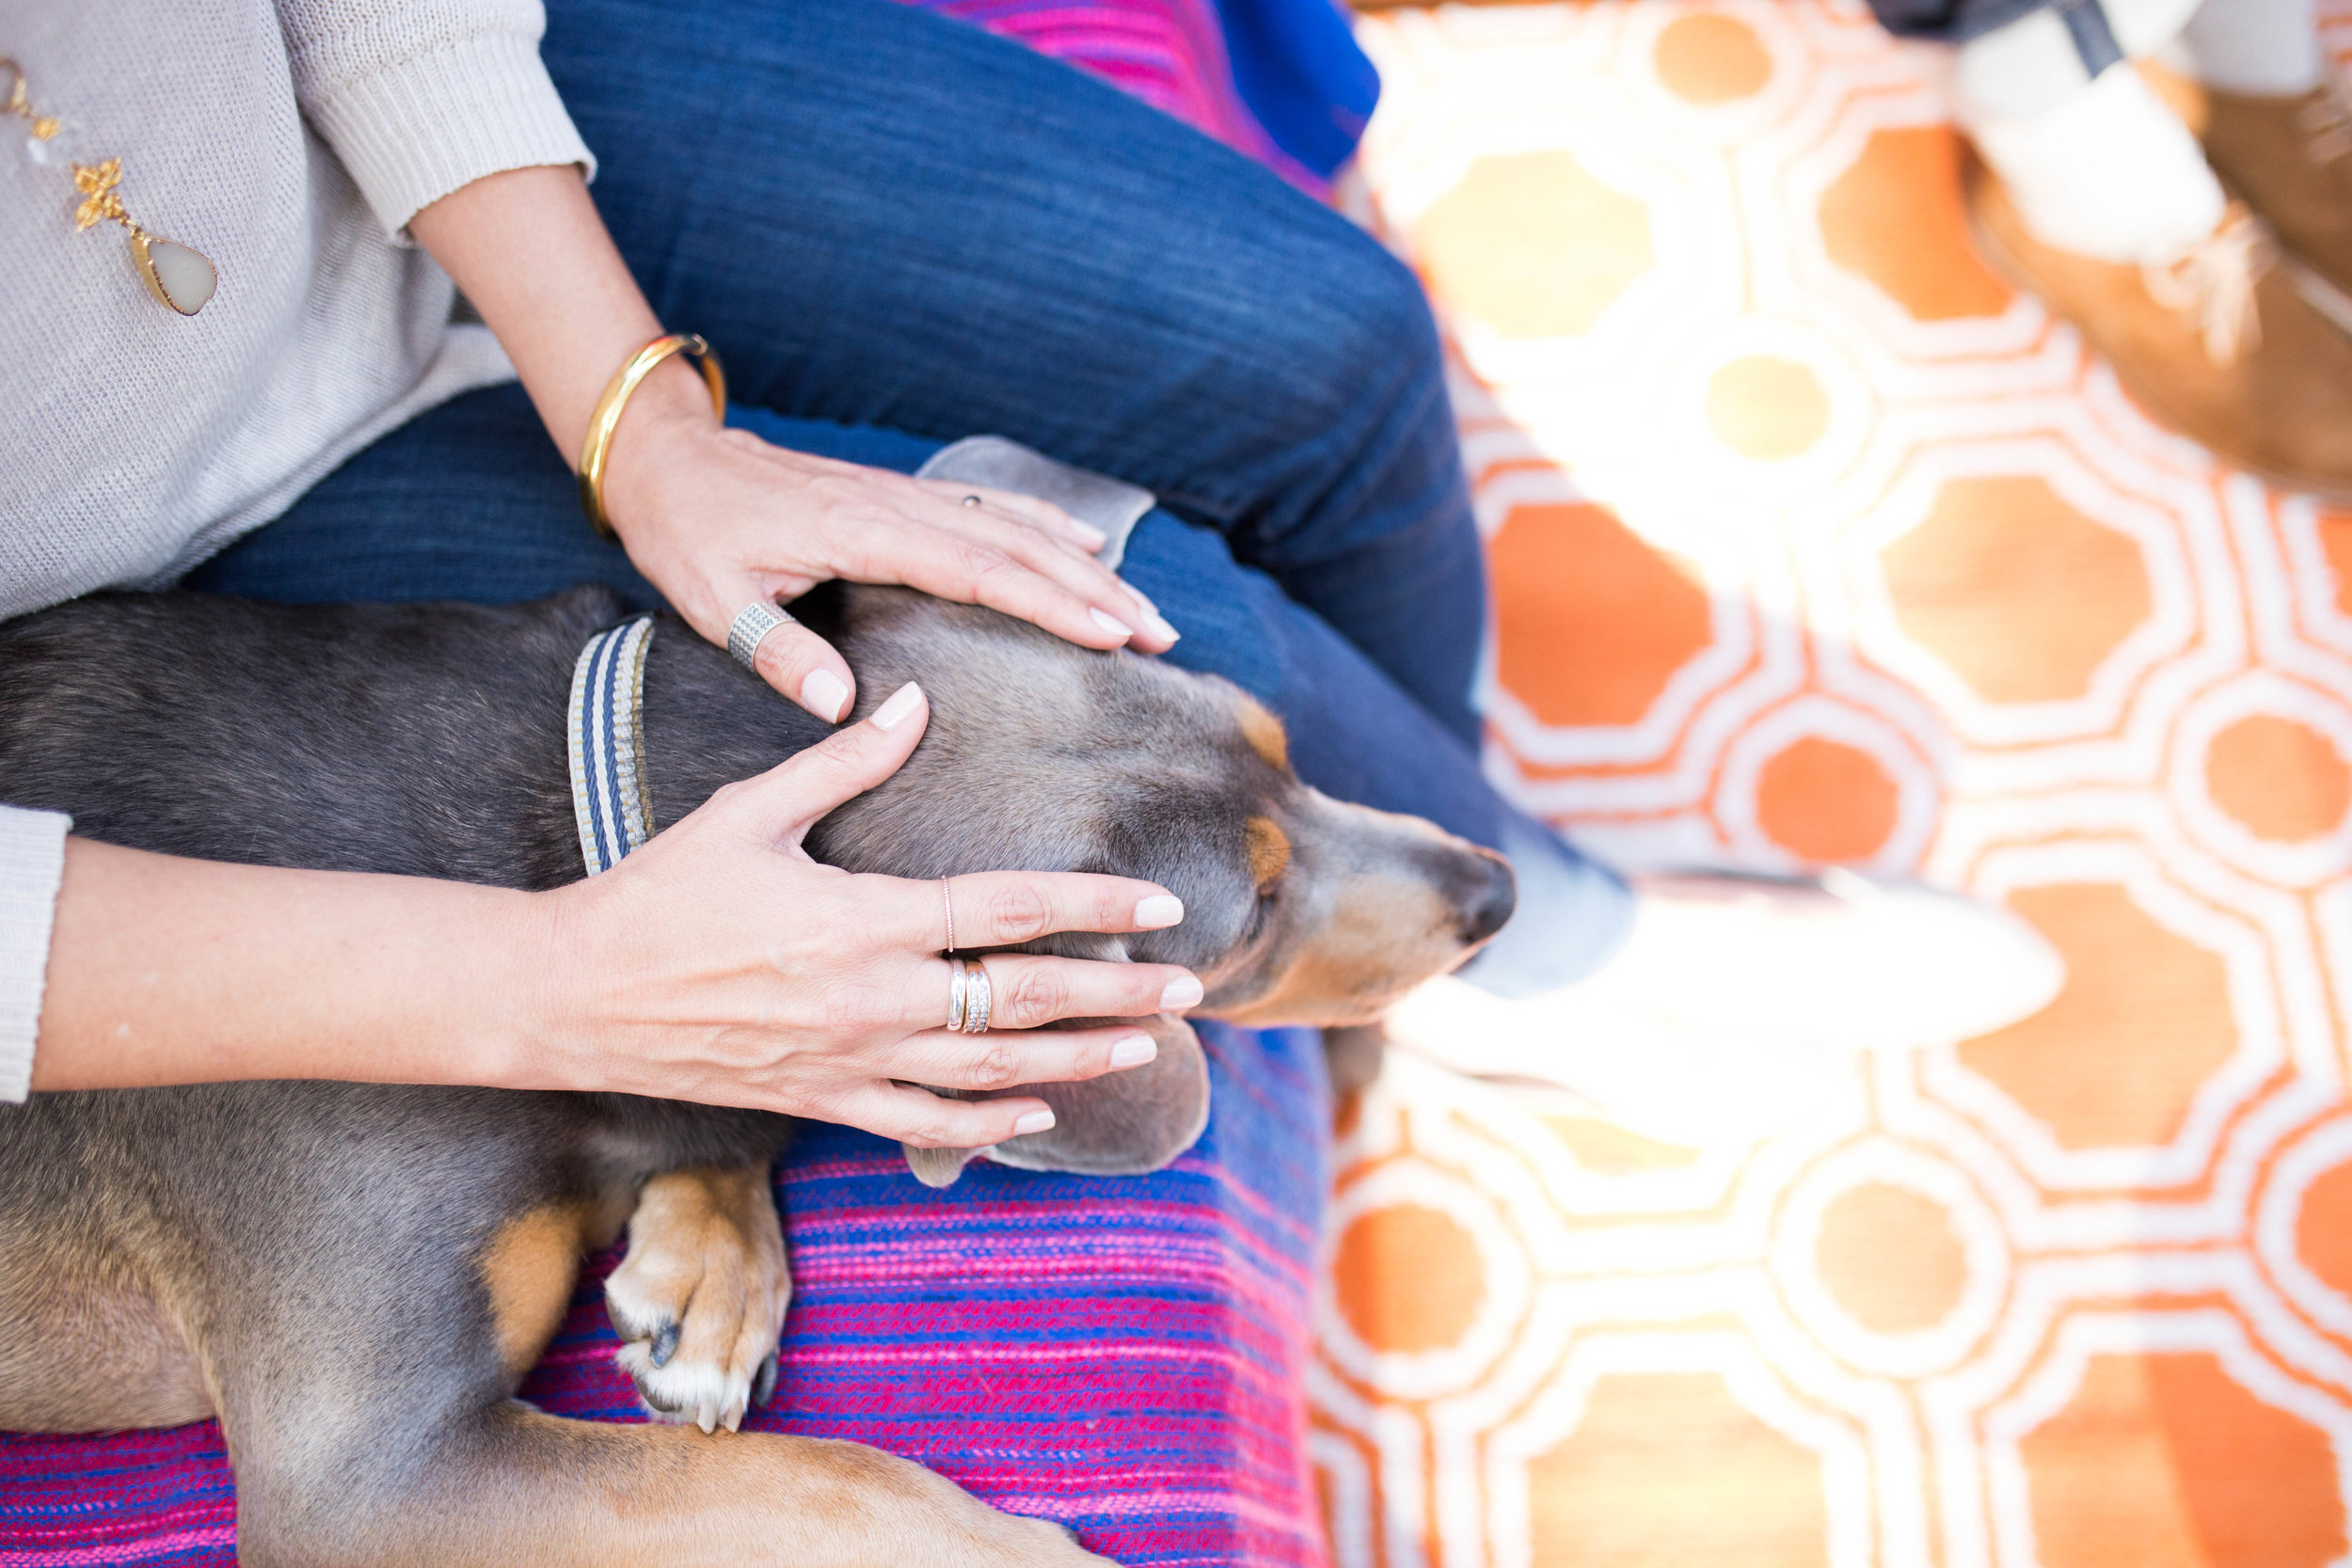 photo session add on: $50 - Does your pet get stressed or anxious in public? As a certified Reiki Master, I offer Reiki for pets to calm their energy before your photo shoot. This is an optional service that can be added to any type of photo session and takes 20 minutes.